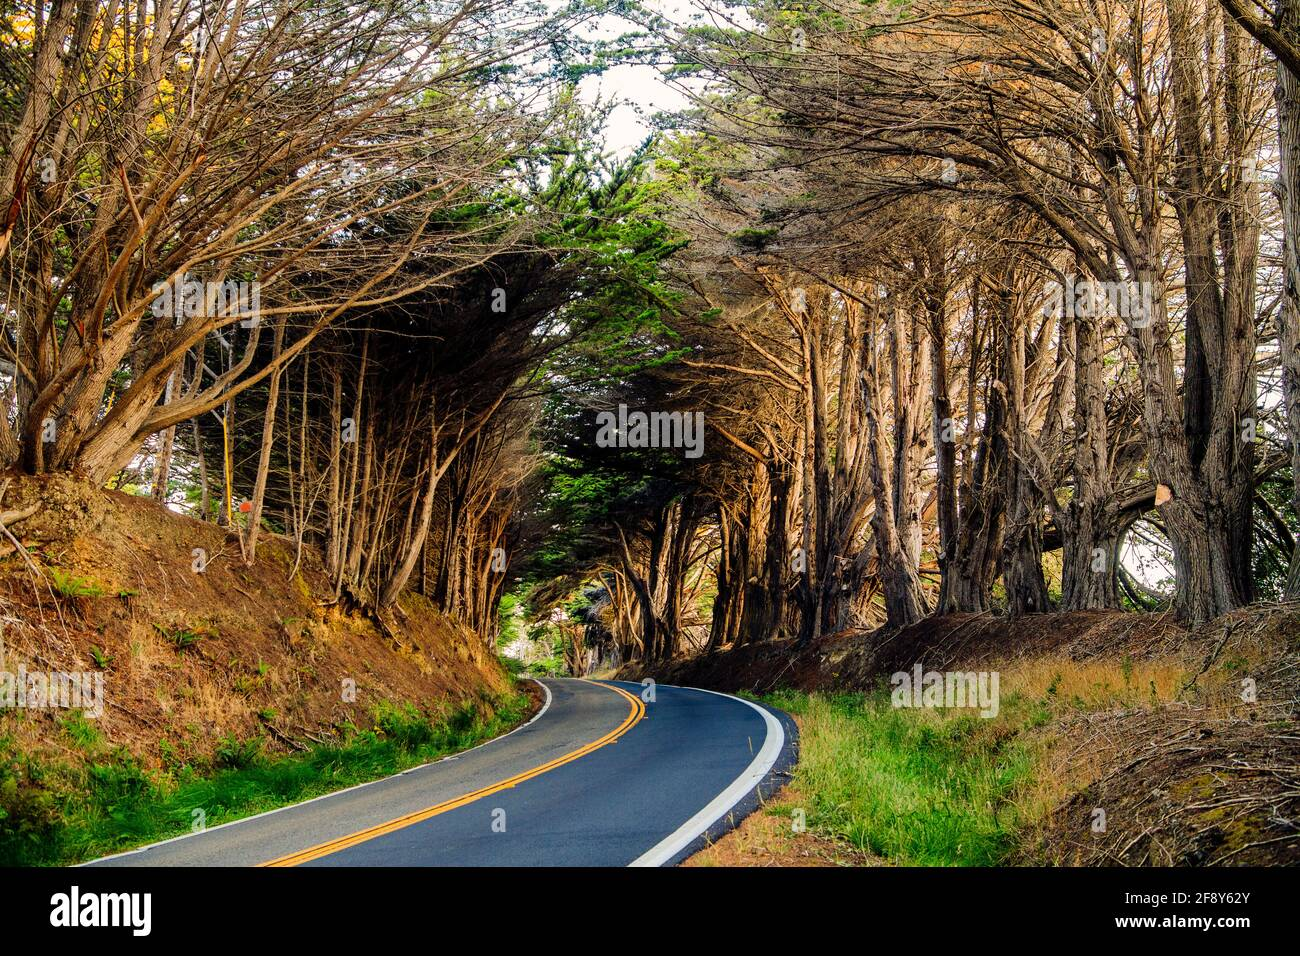 Trees and road, Fort Bragg, California, USA Stock Photo